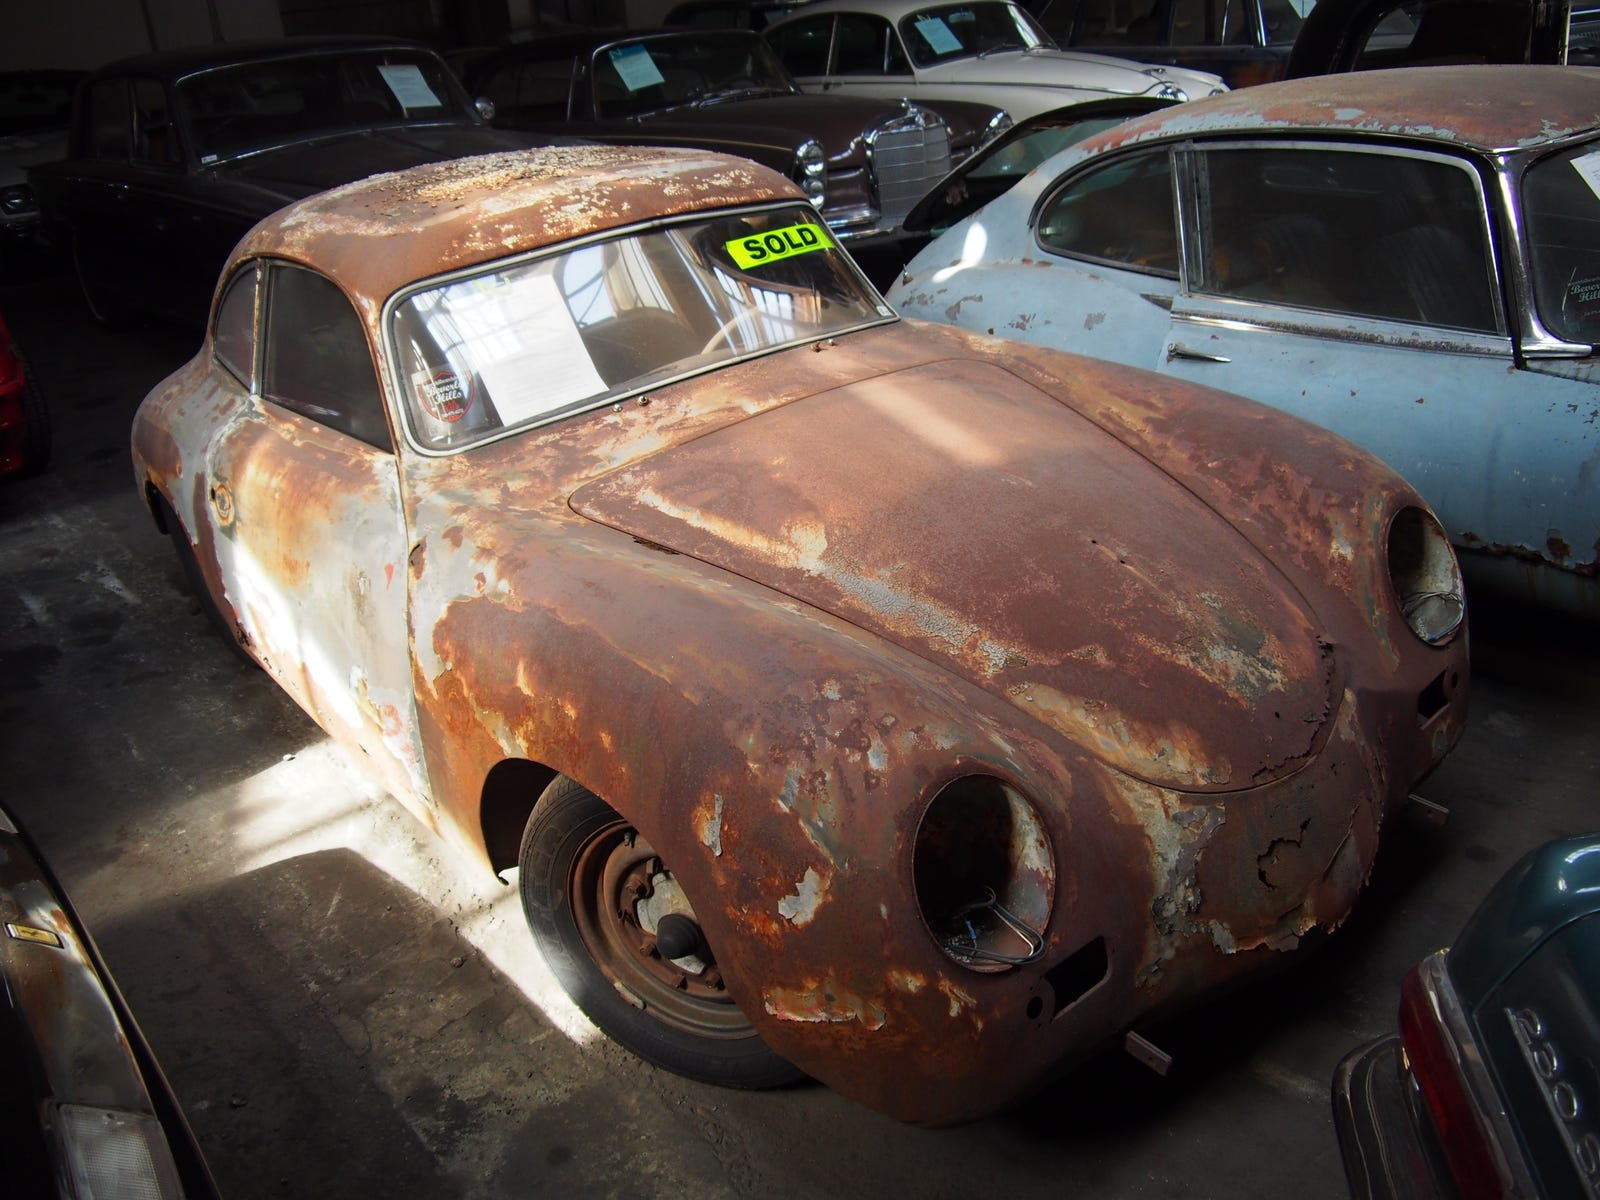 A 356A that has become a magnificent husk of rust. I hope the new owner preserves that patina.